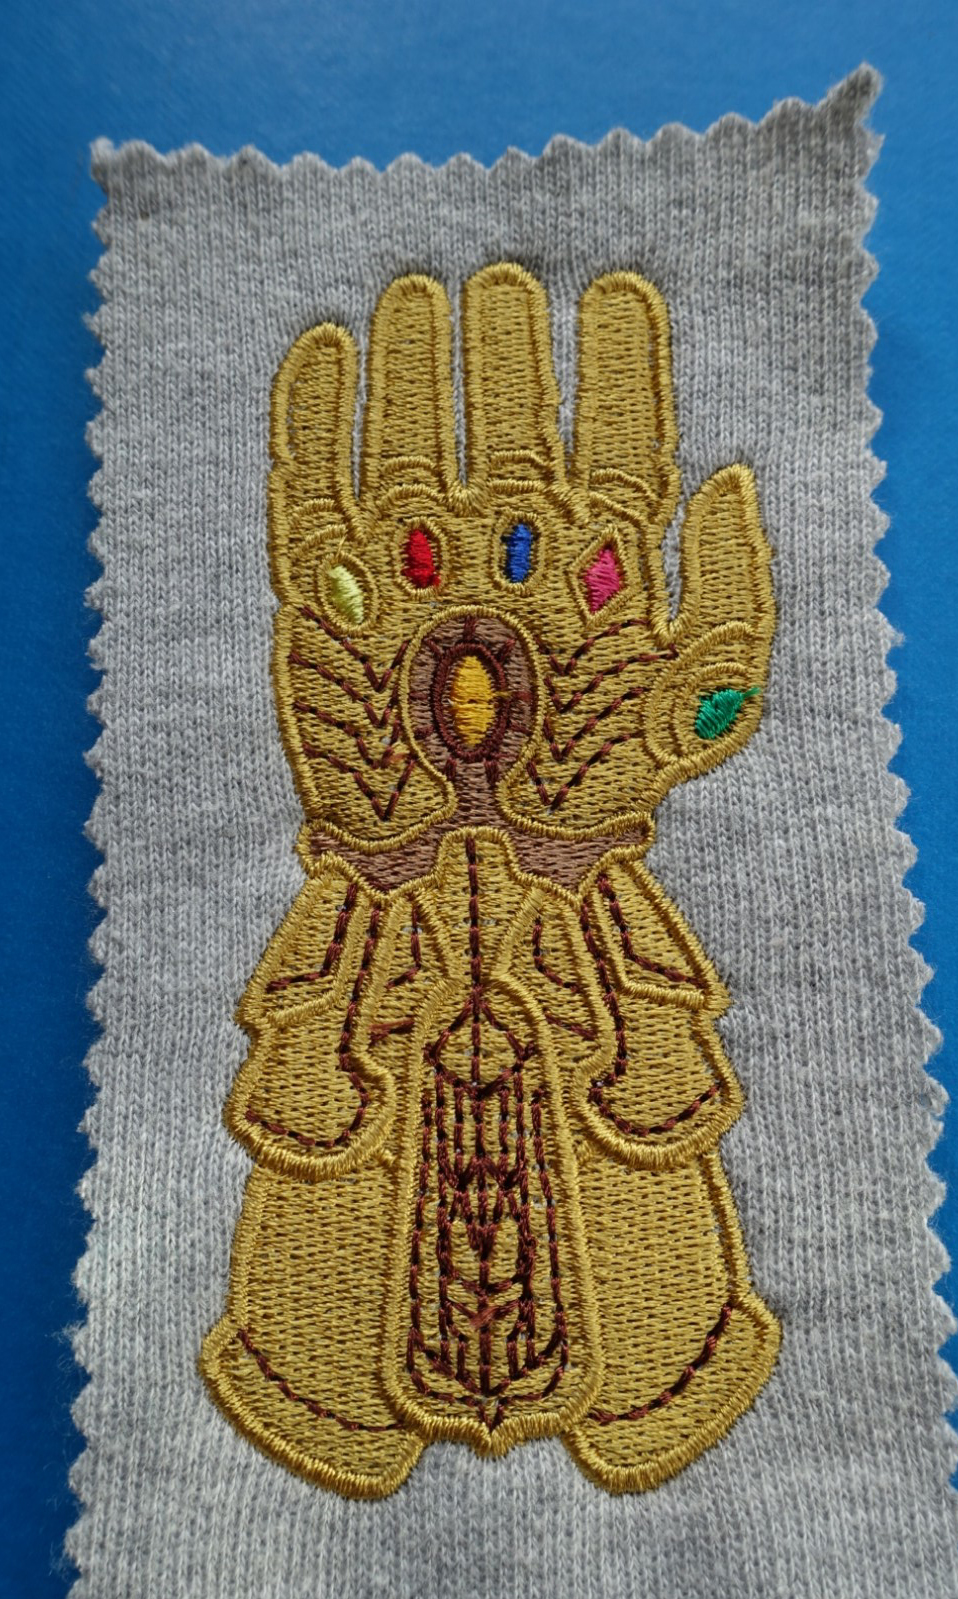 anne's blog: Machine embroidery - An Infinity Gauntlet for Ben